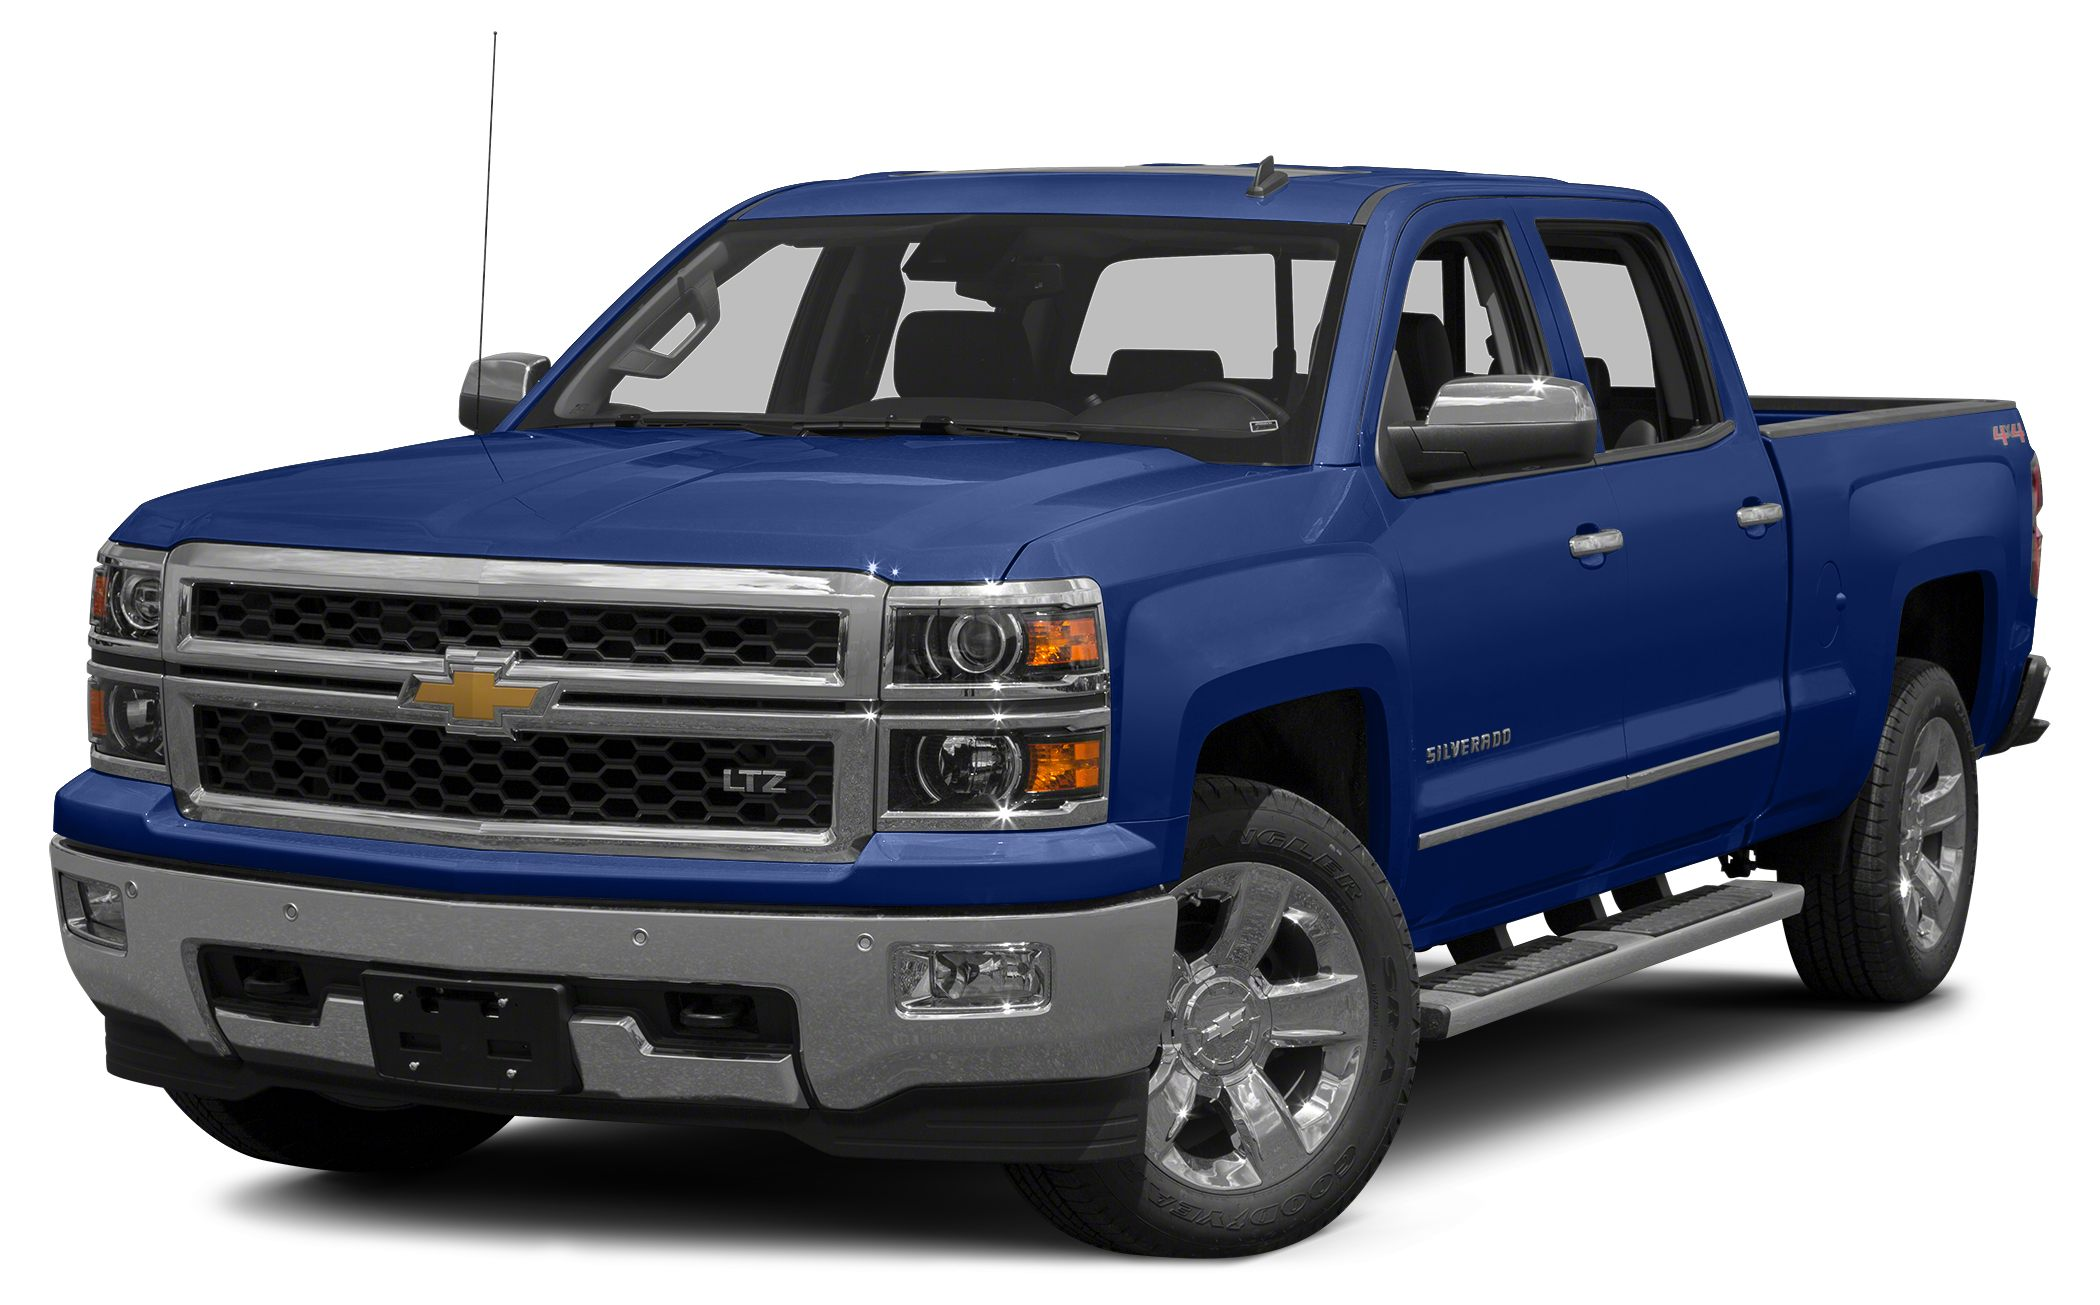 2015 Chevrolet Silverado 1500 1LZ EPA 21 MPG Hwy15 MPG City CARFAX 1-Owner Heated Leather Seats